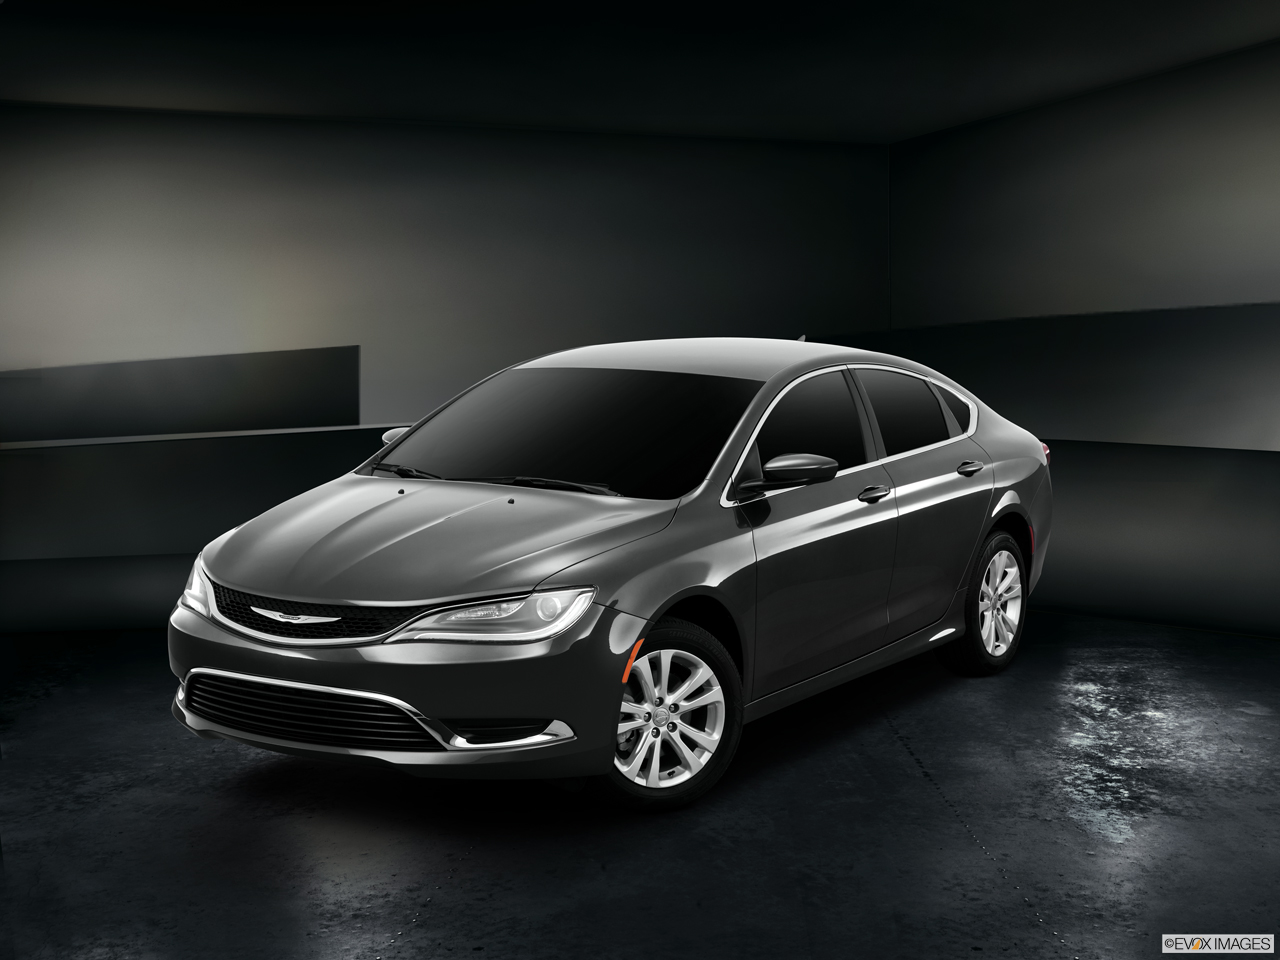 2016 chrysler 200 treasure coast arrigo ft pierce. Cars Review. Best American Auto & Cars Review